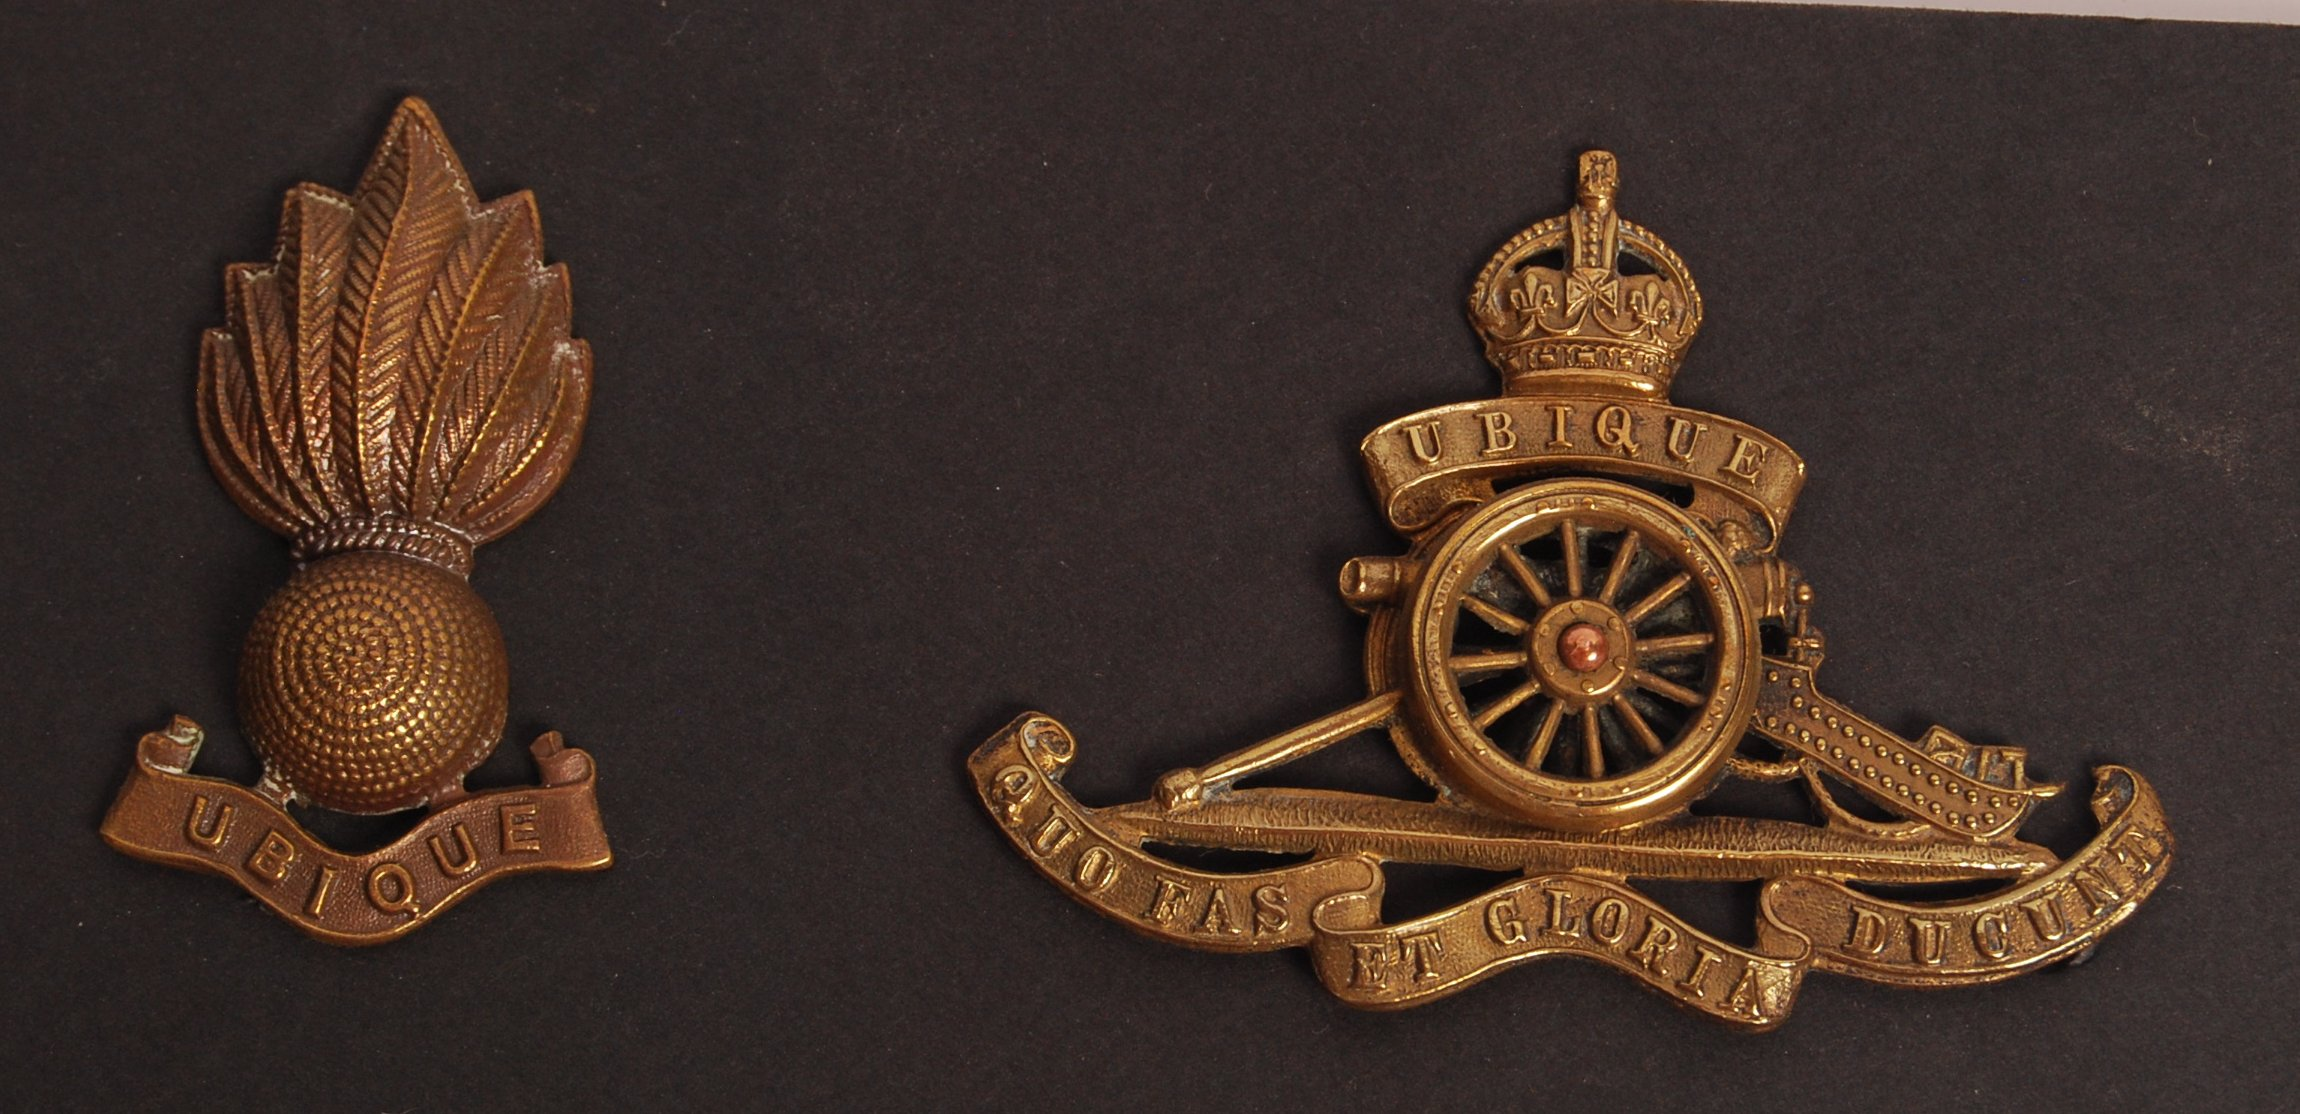 Lot 119 - BRITISH ARMY ROYAL ARTILLERY WWI & LATER REGIMENT